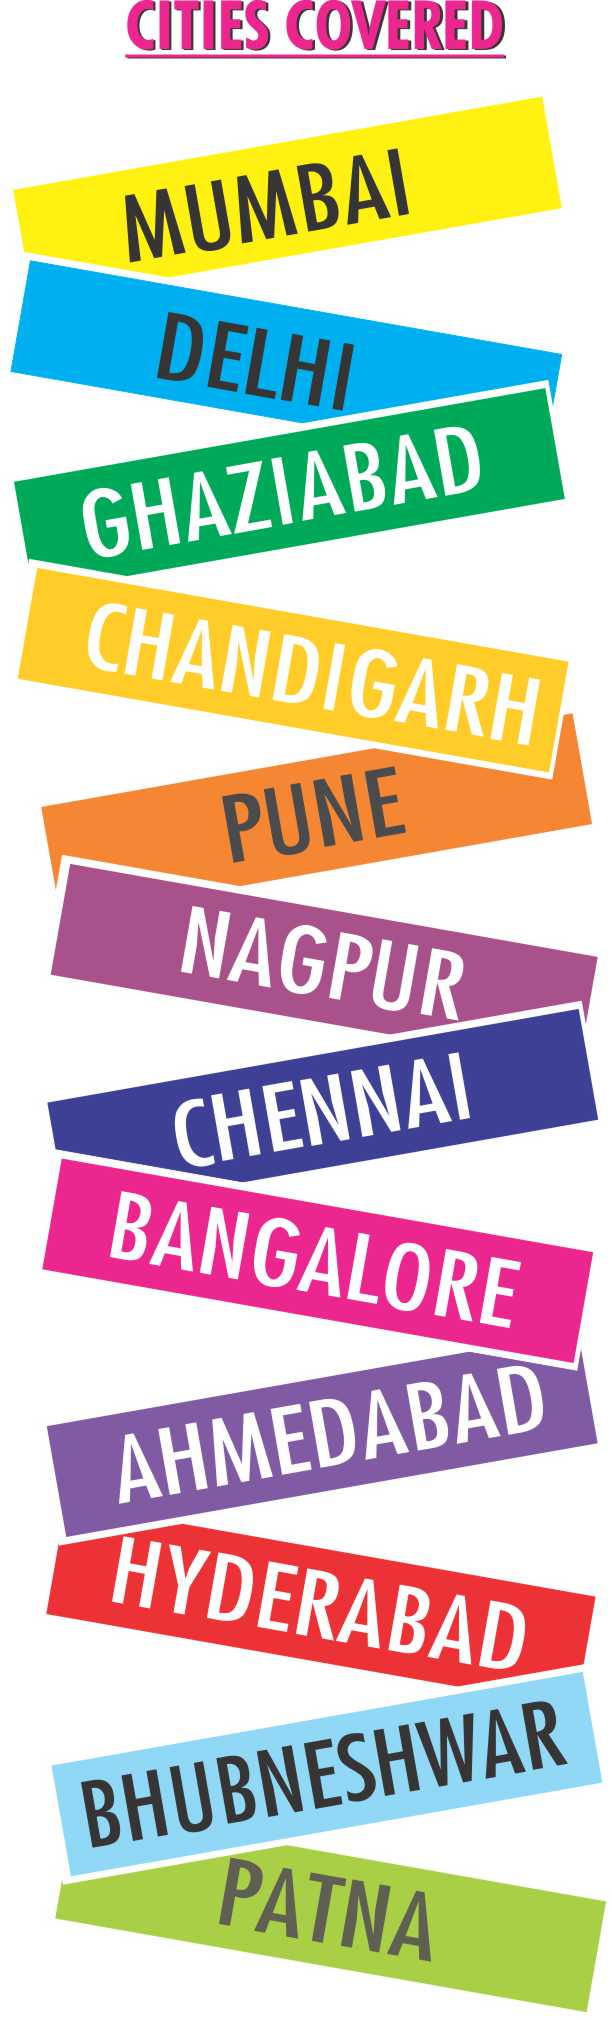 cities in india for public notice ads